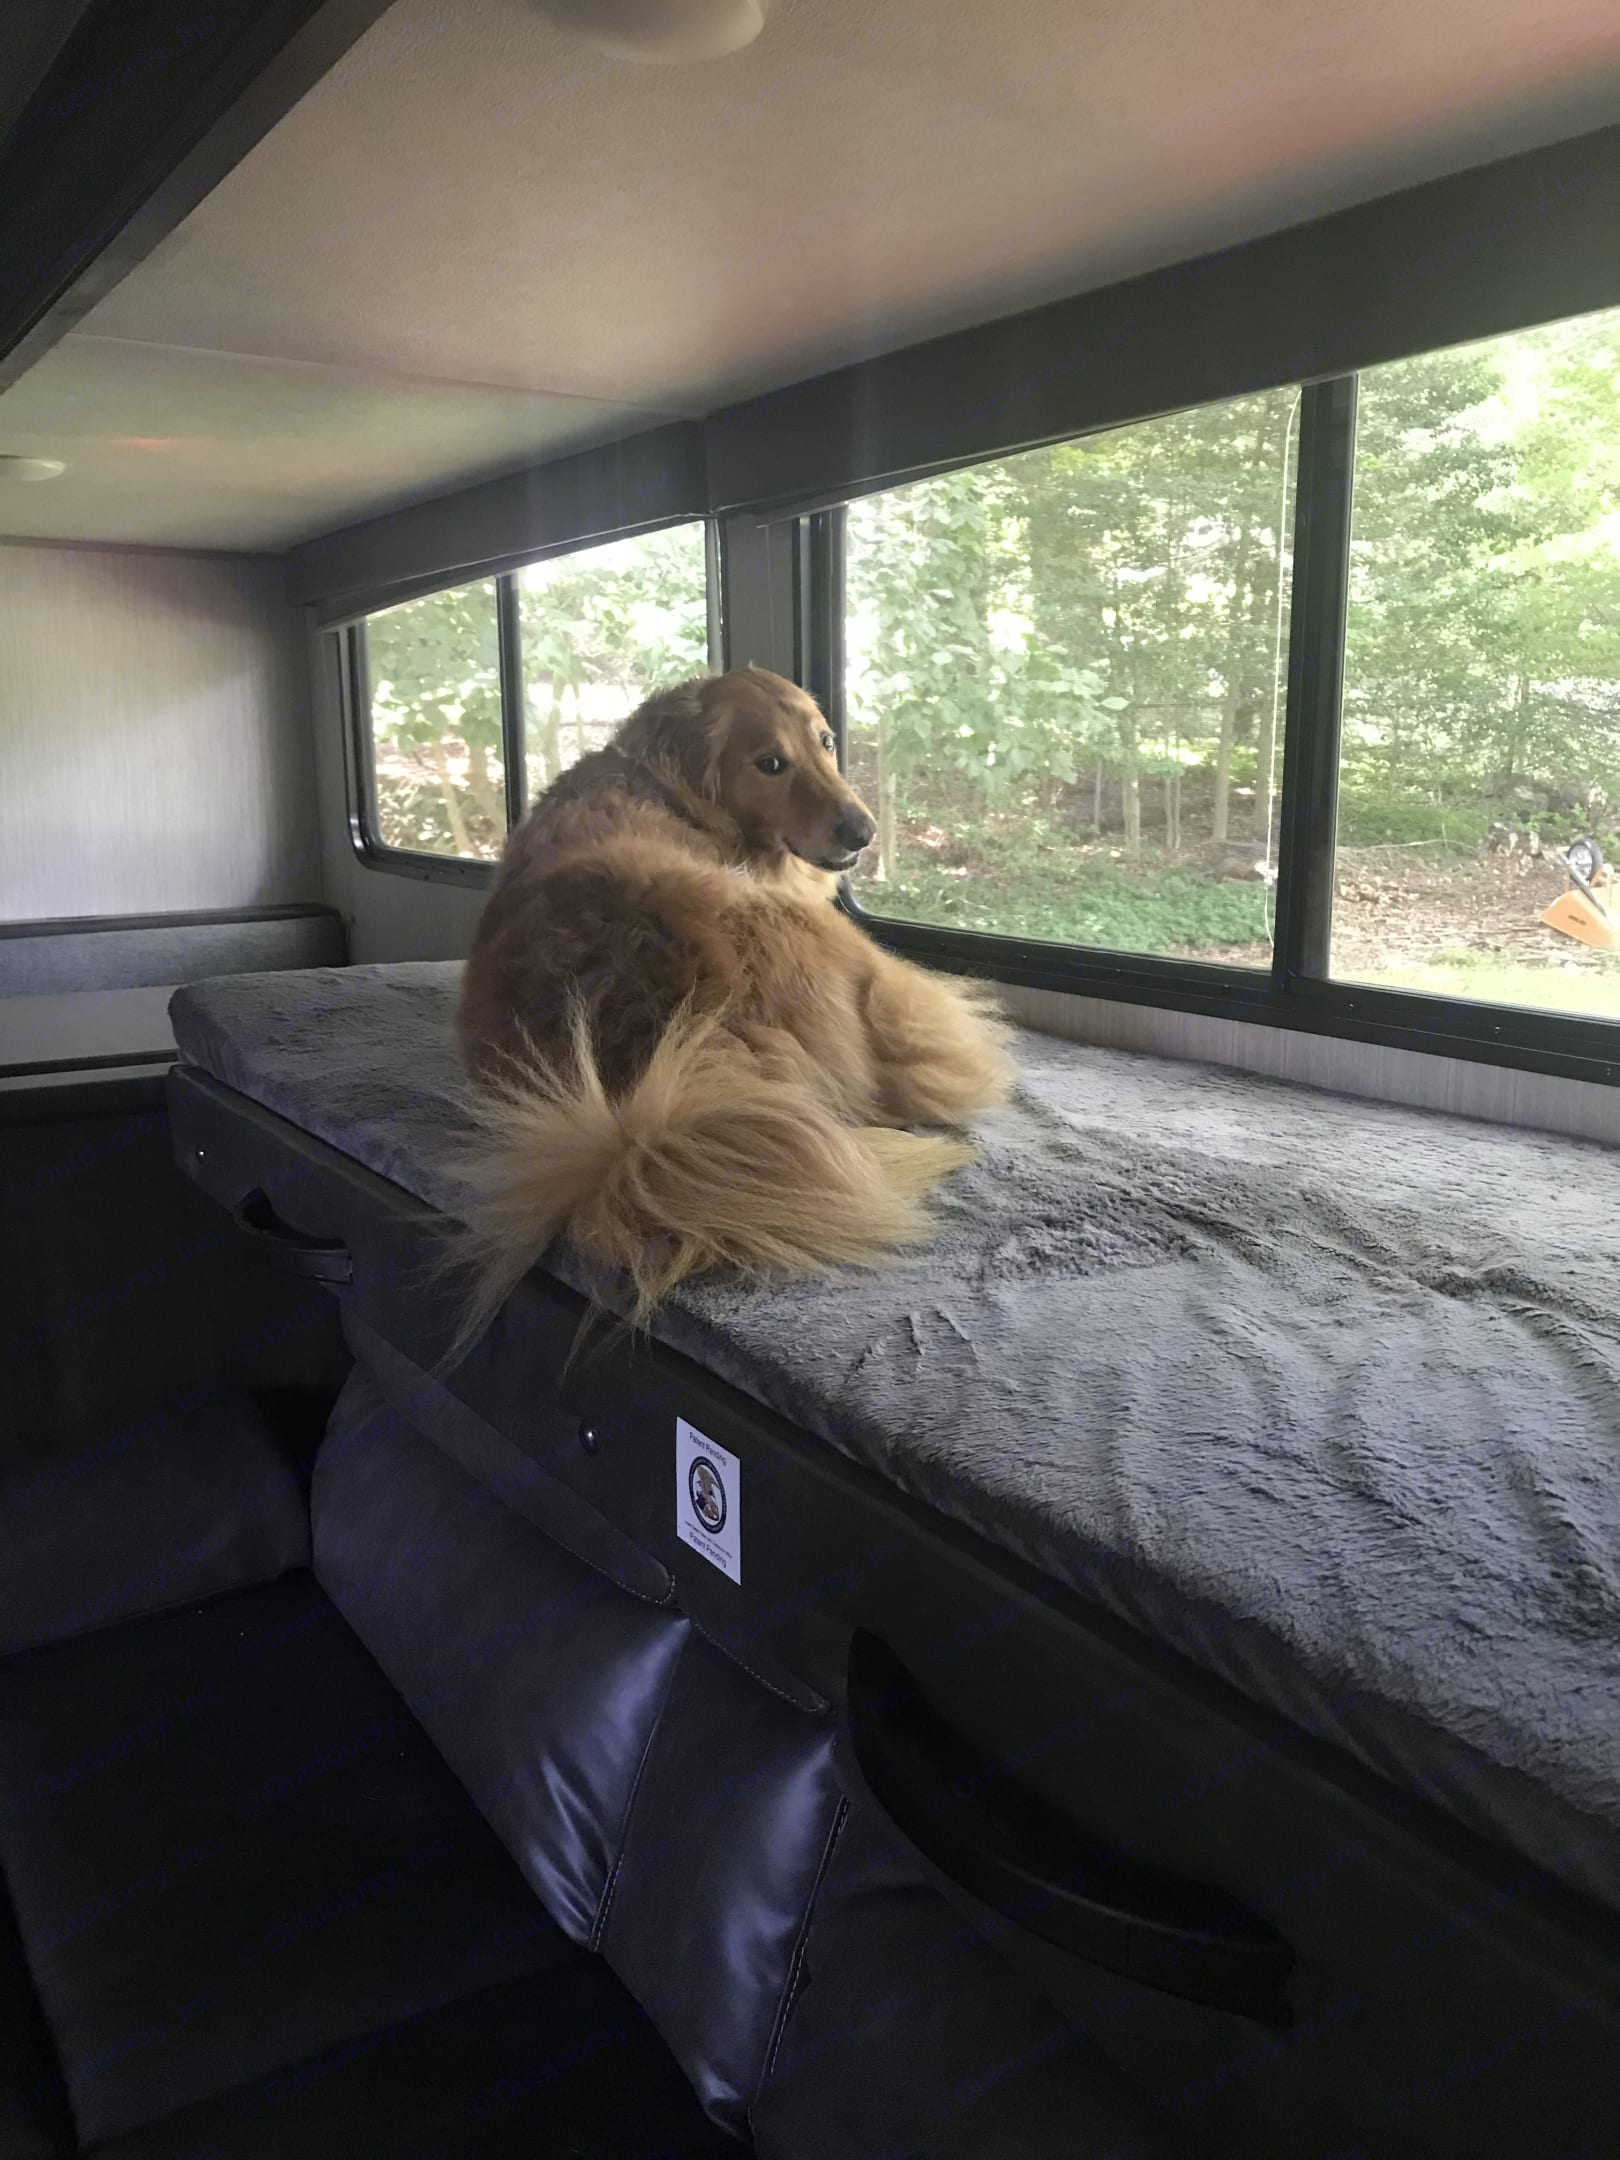 Couch/bunk bed combo. ForestRiver CherokeeWolfPup 2019